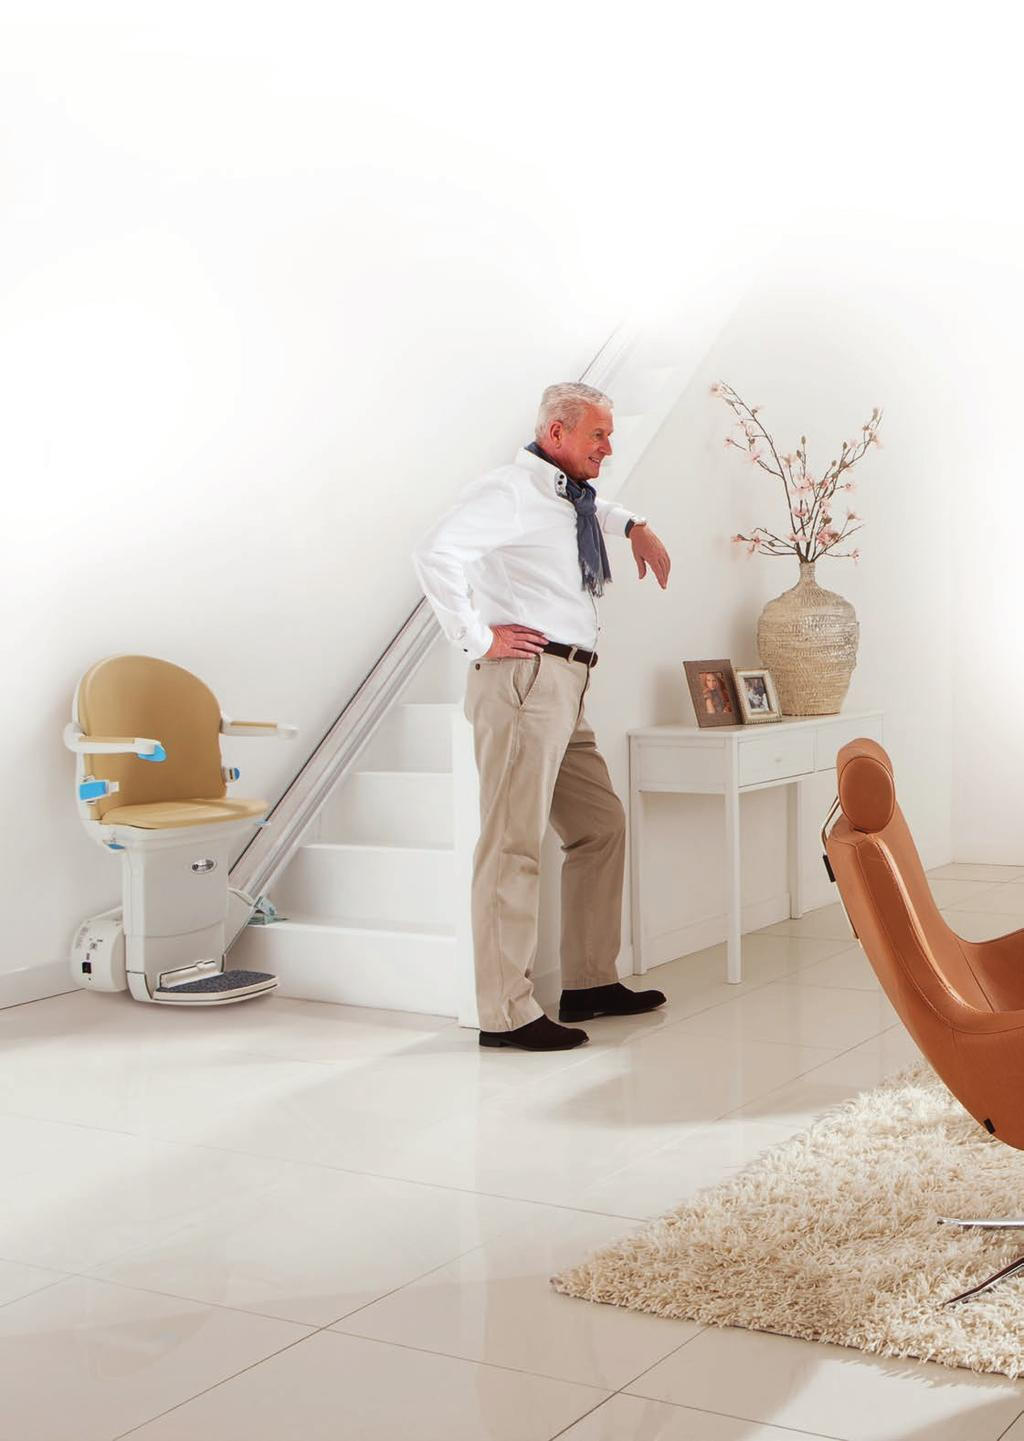 The benefits of a straight stairlift from Handicare If you are thinking about installing a stairlift, Handicare stairlifts offer you a safe and reliable solution.